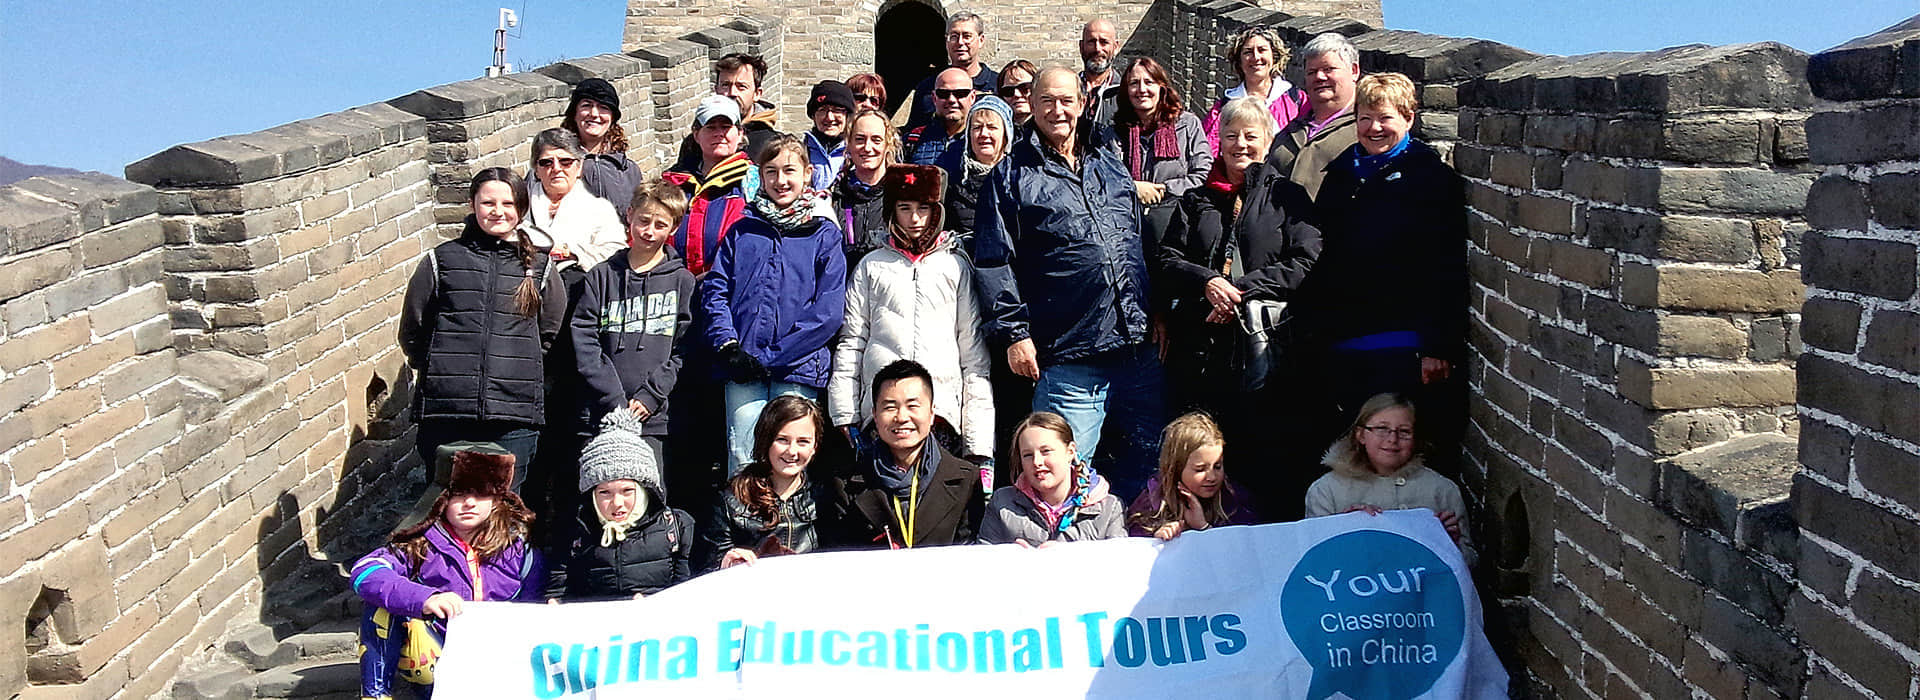 China Cultural Heritage Tour for Students